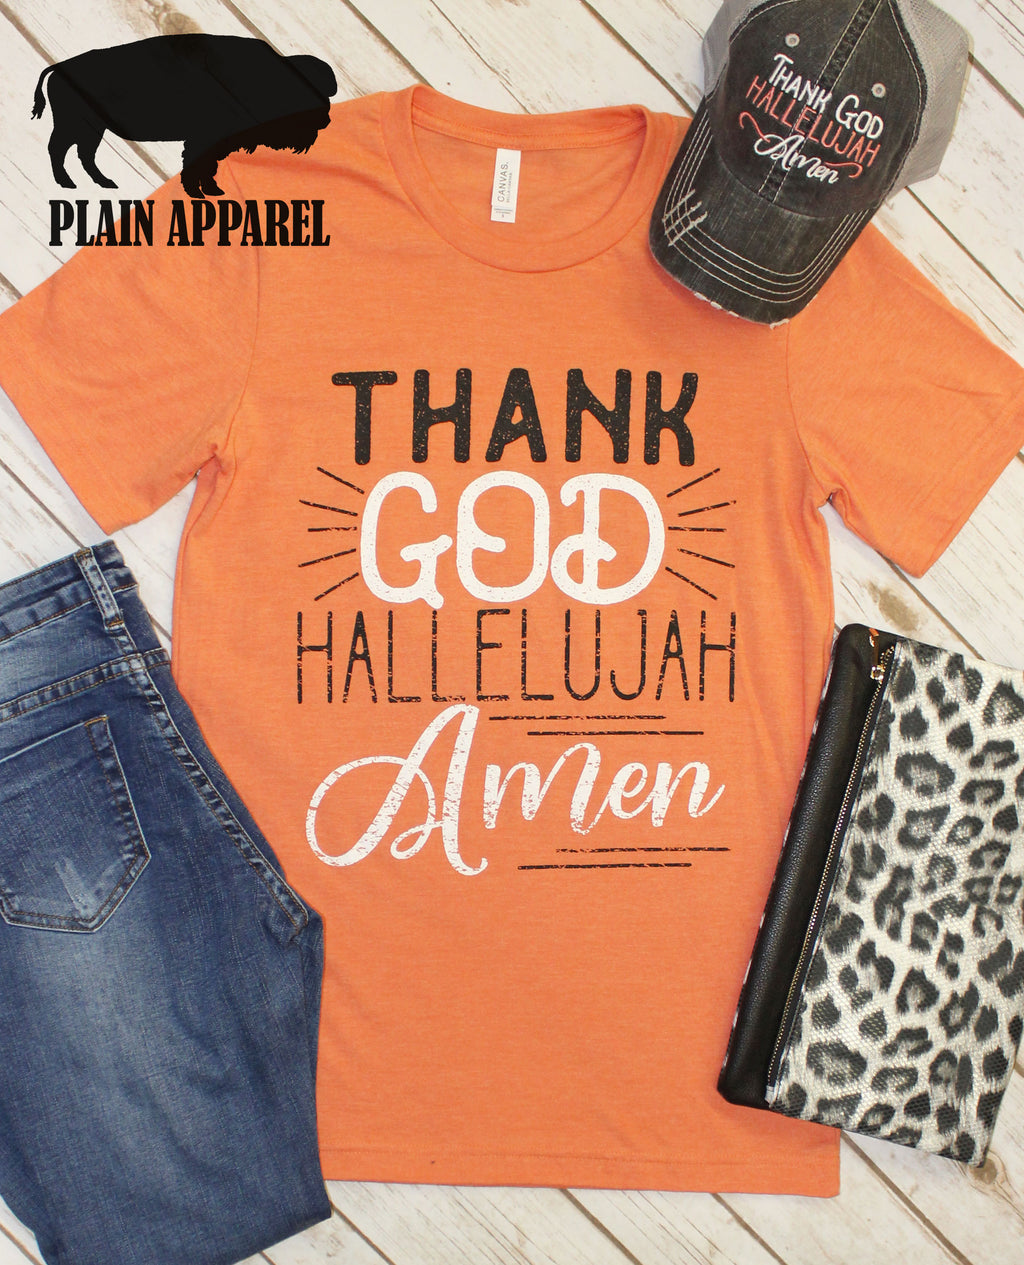 Thank God Hallelujah Amen Crew Neck Tee